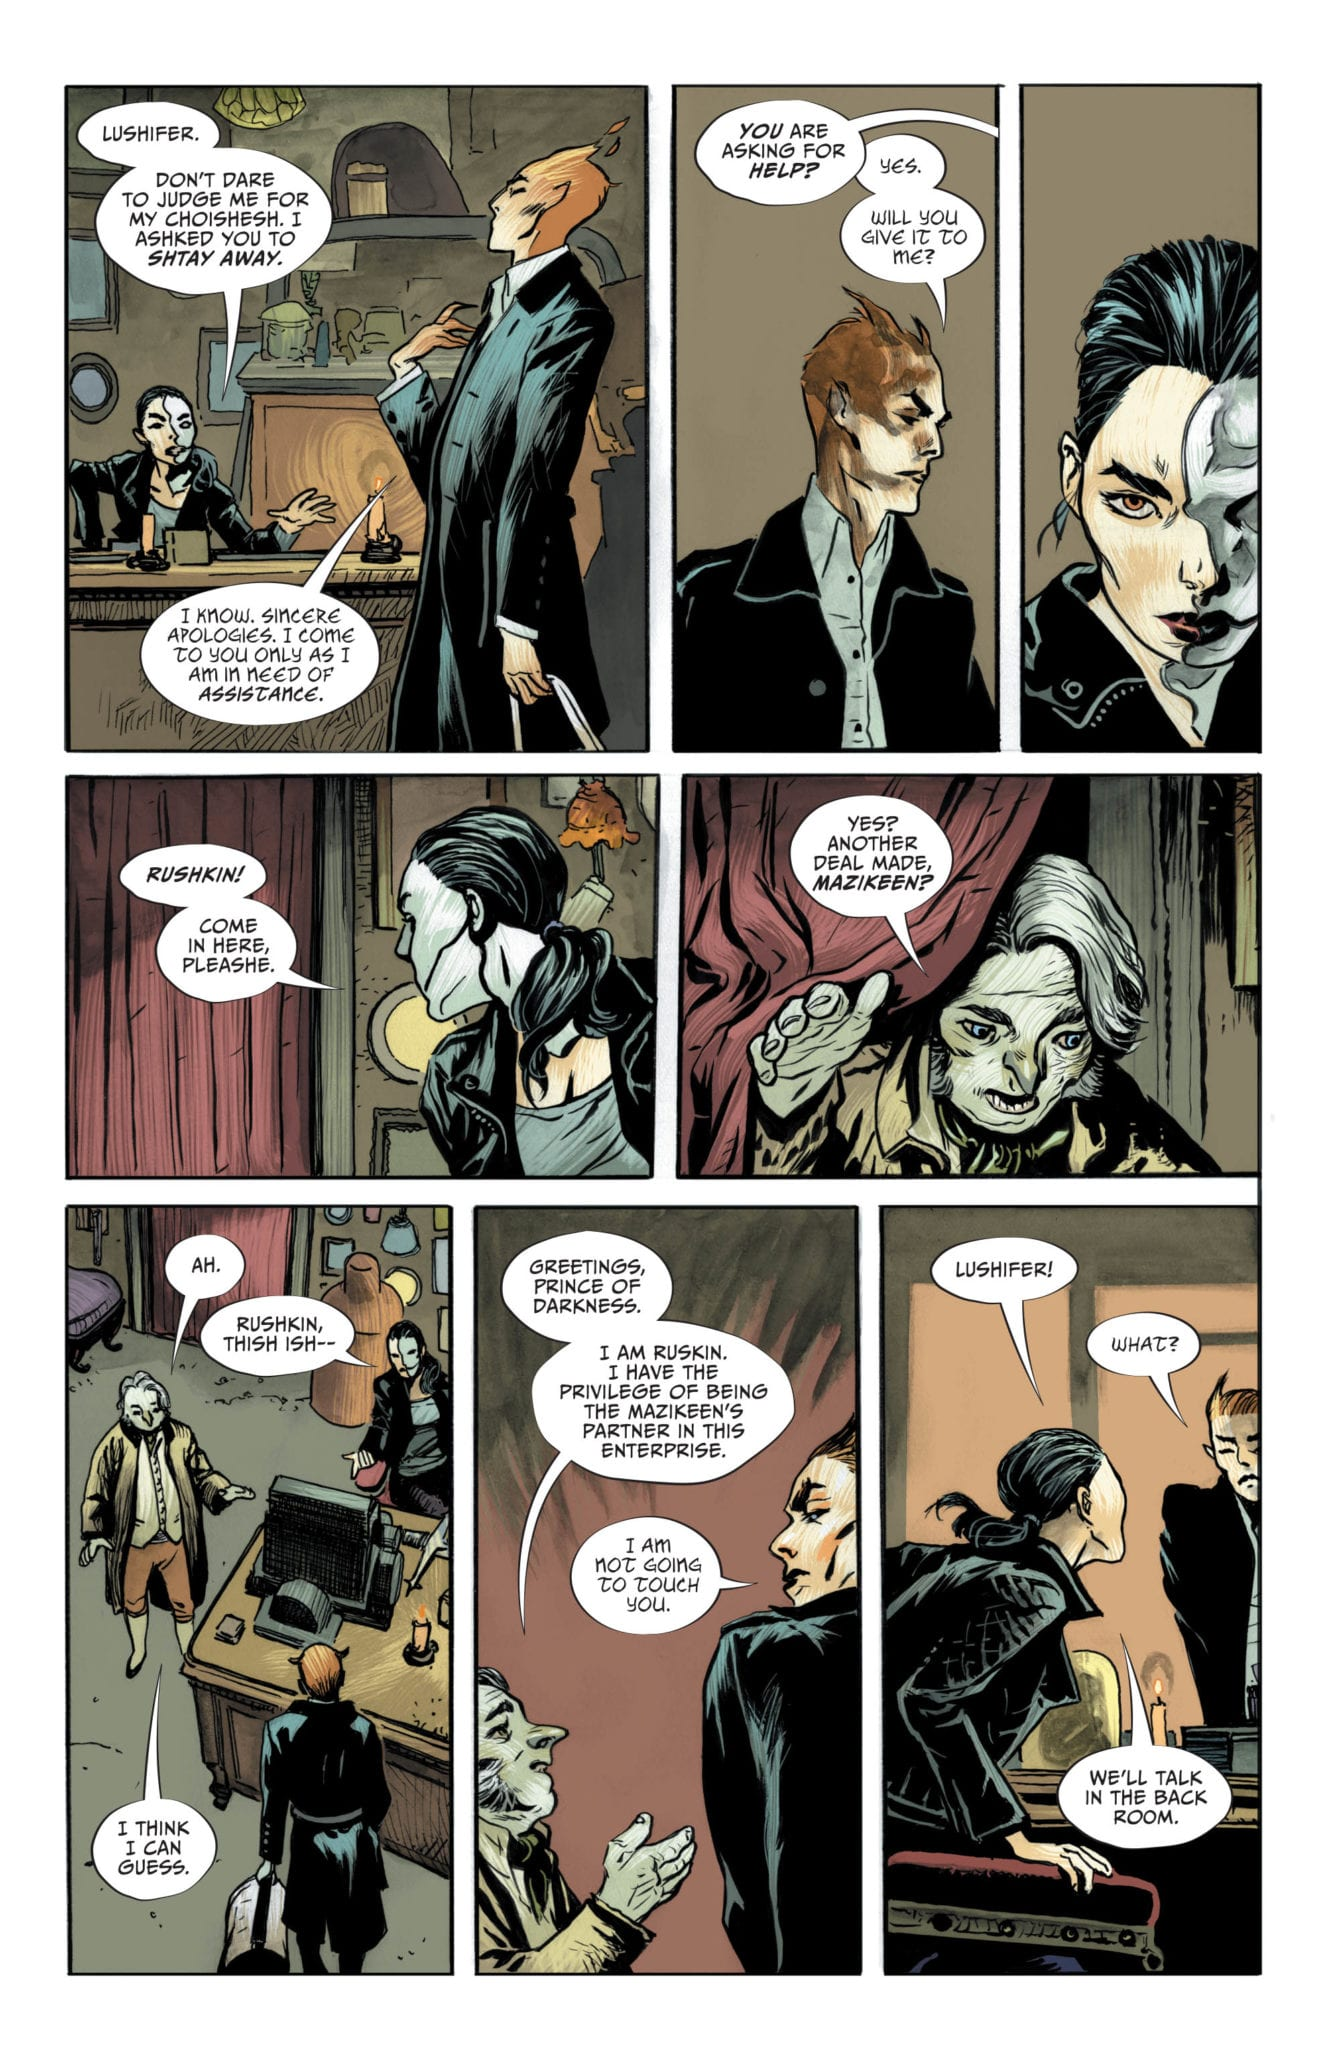 Lucifer #16, Page #6; Lucifer speaks to Mazikeen